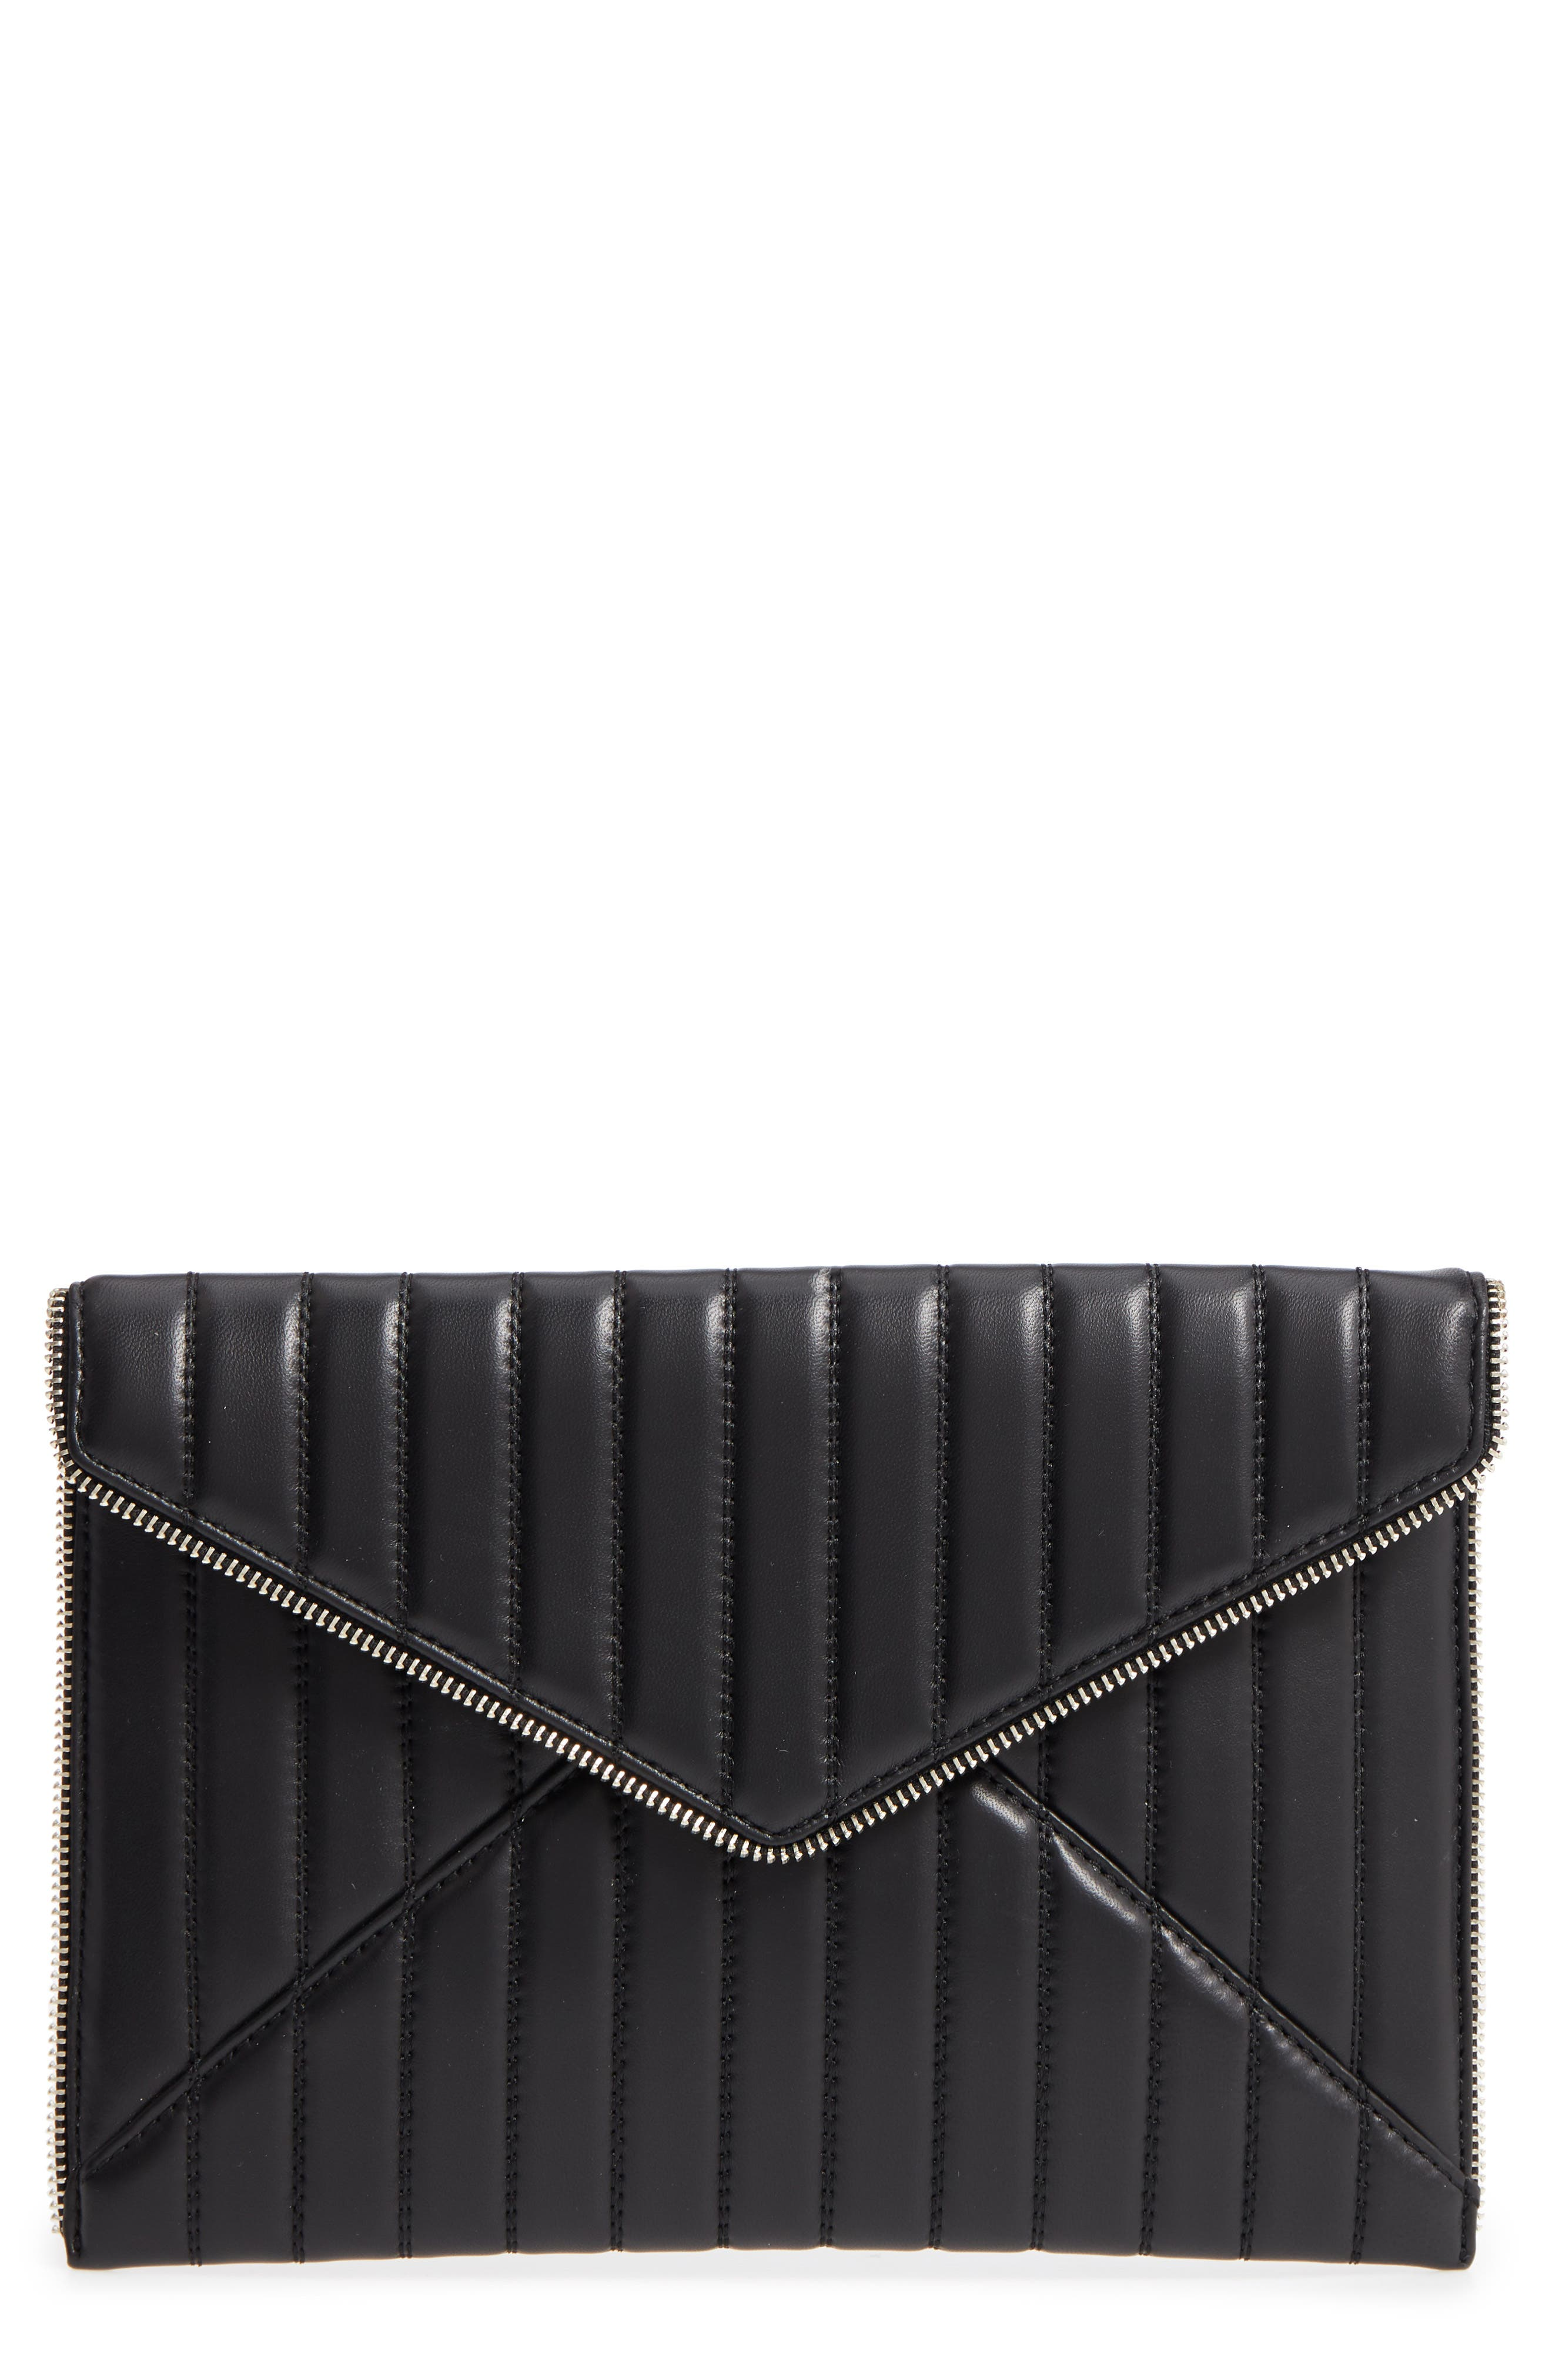 Leo Quilted Leather Clutch,                             Main thumbnail 1, color,                             Black